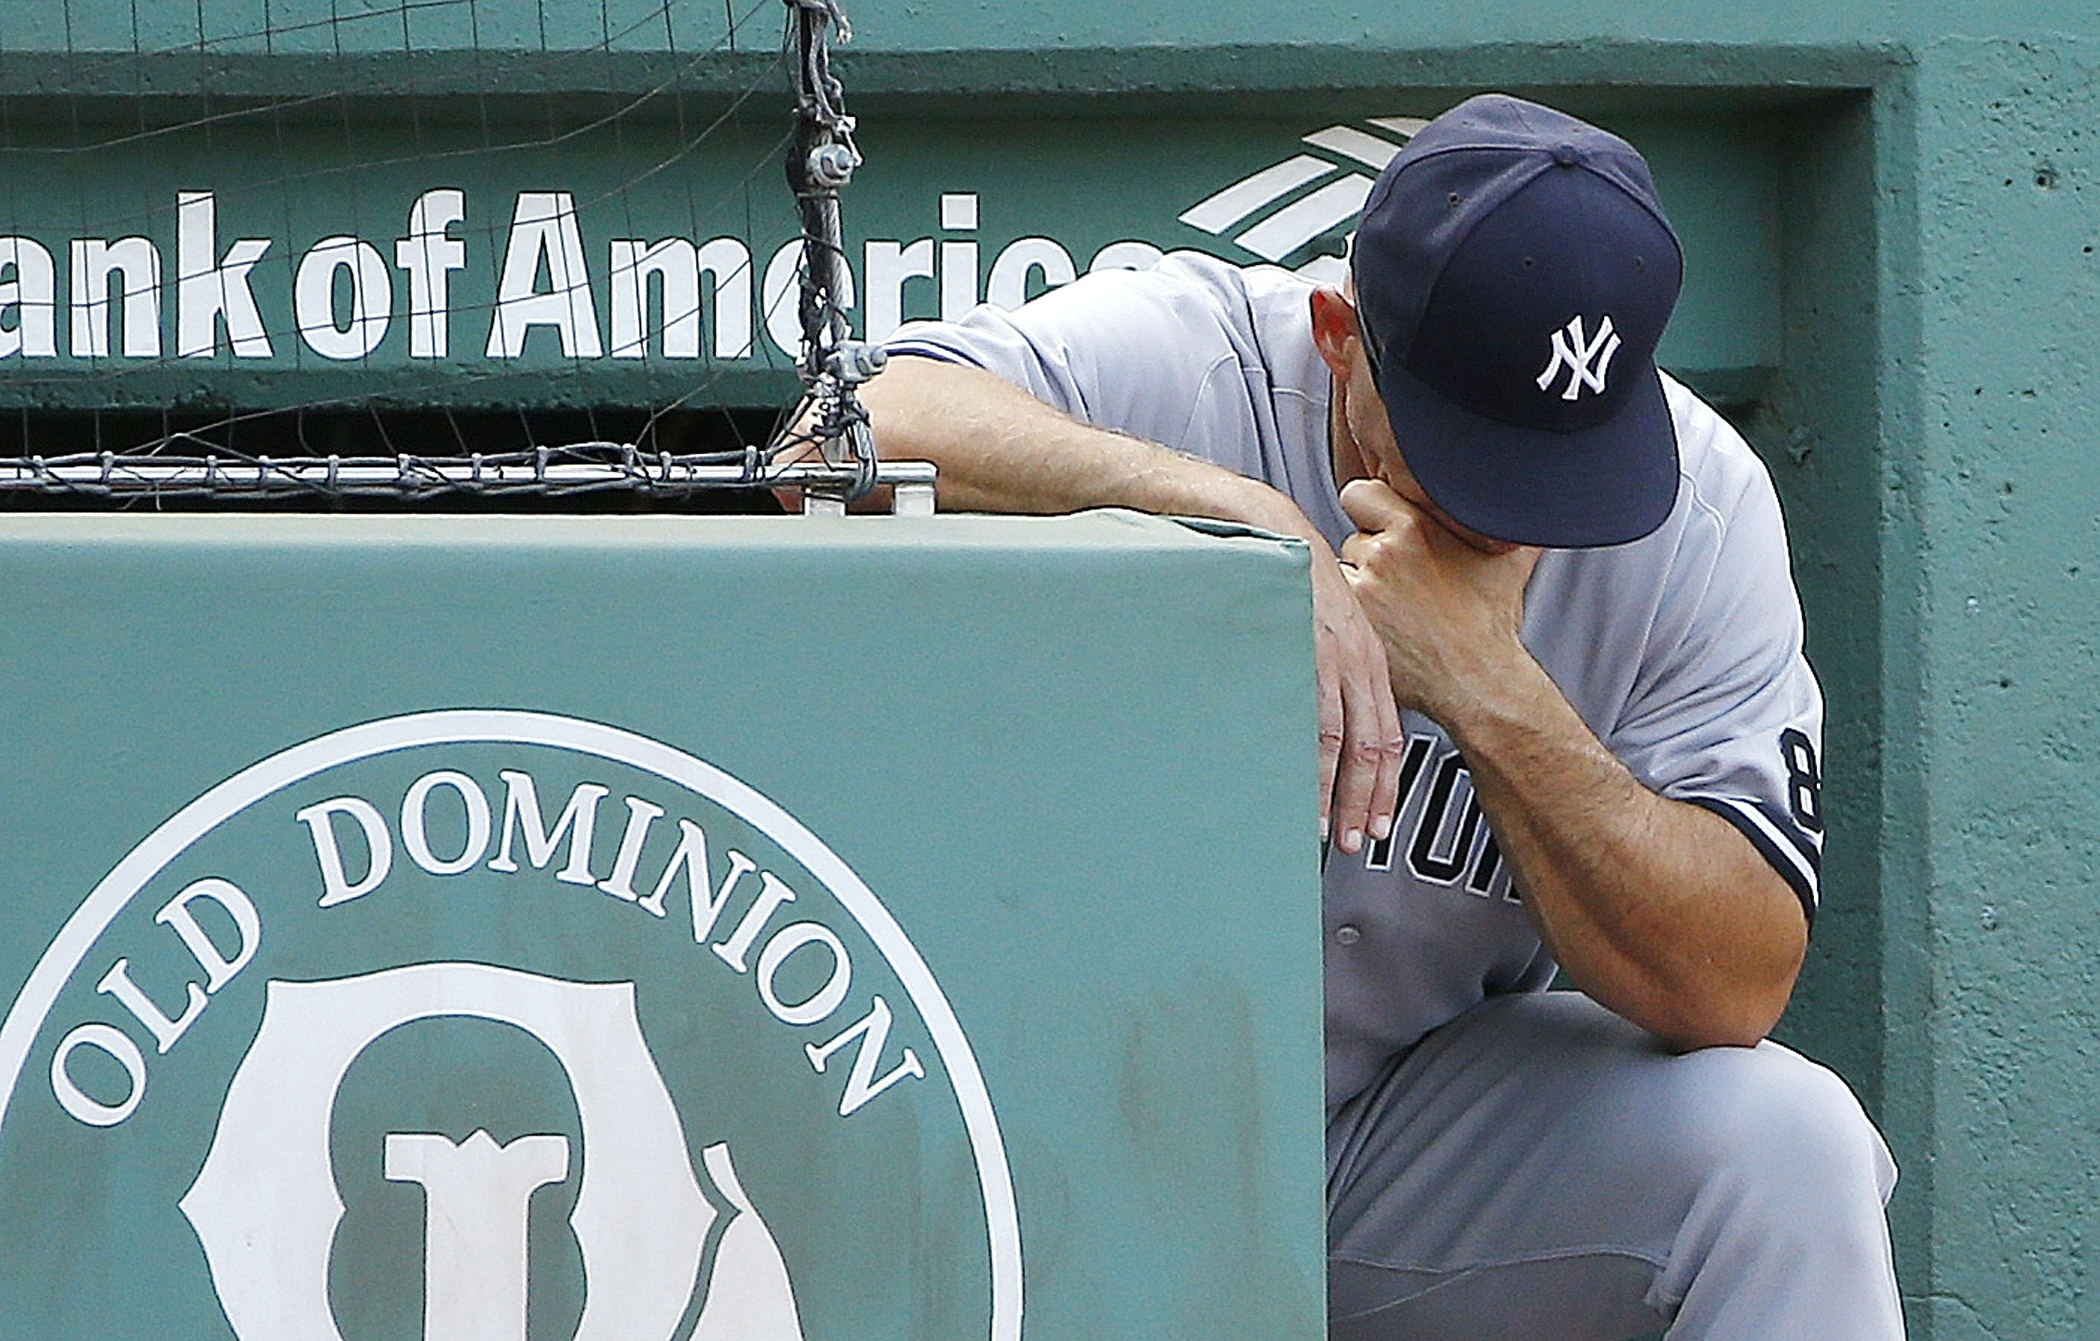 New York Yankees manager Joe Girardi looks down during the eighth inning of a baseball game against the Boston Red Sox in Boston, Saturday, Sept. 17, 2016. The Red Sox won 6-5. (AP Photo/Michael Dwyer)